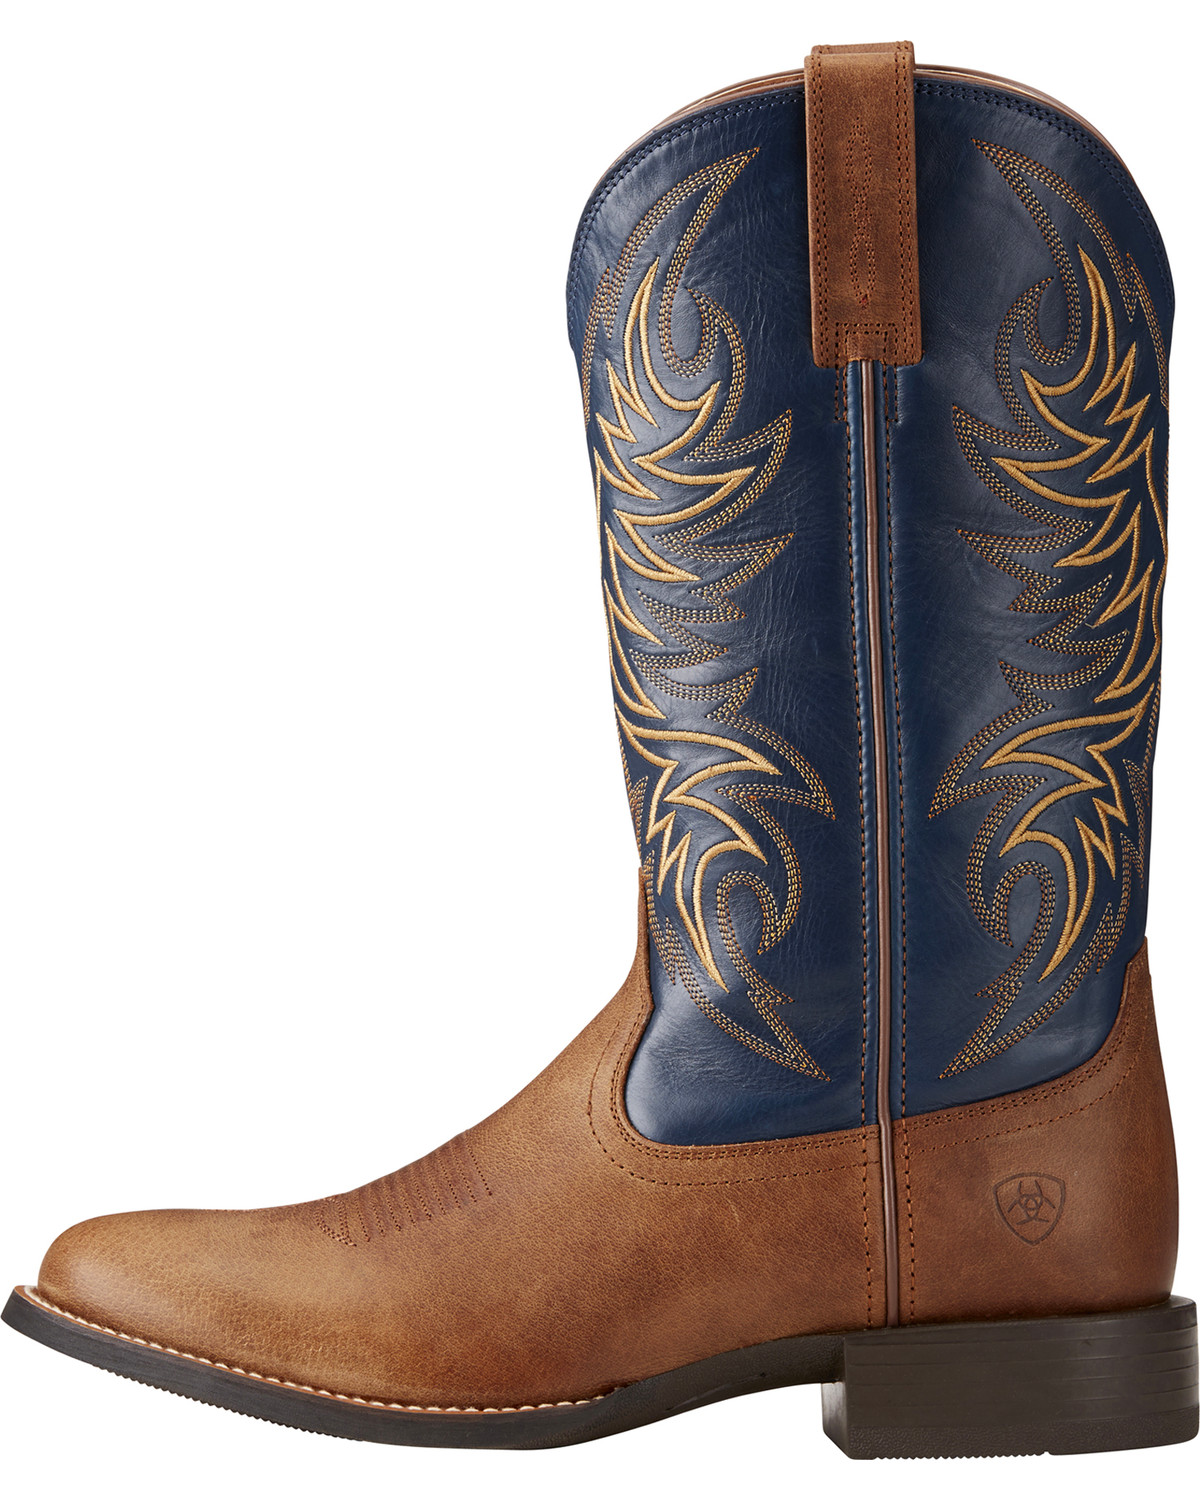 Amazing Price Online Free Shipping Amazon Ariat Sport Horseman Cowboy Boot(Men's) -Sandstorm/Solid Blue Full Grain Leather Cheap Sale Deals Discount From China Many Kinds Of Cheap Online MnCymBE